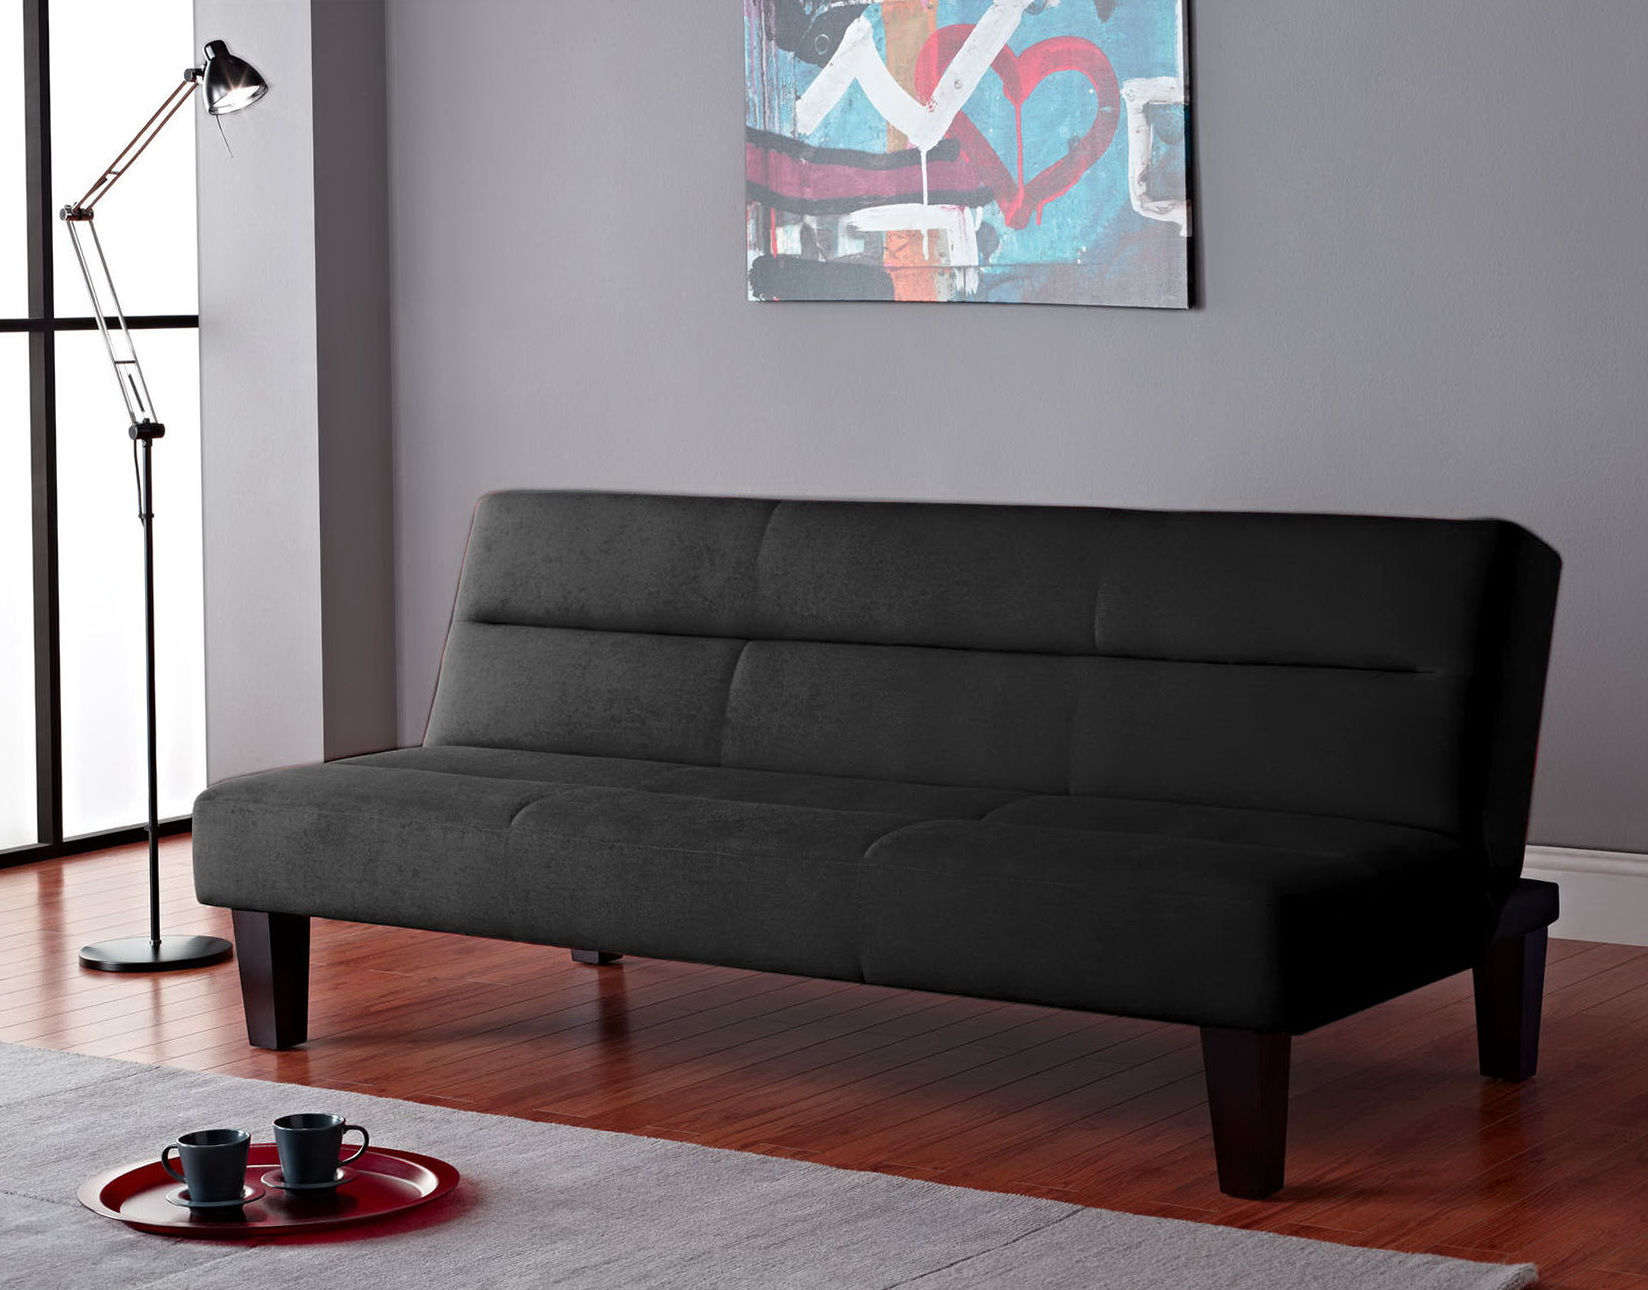 Kebo Futon Sofa Bed